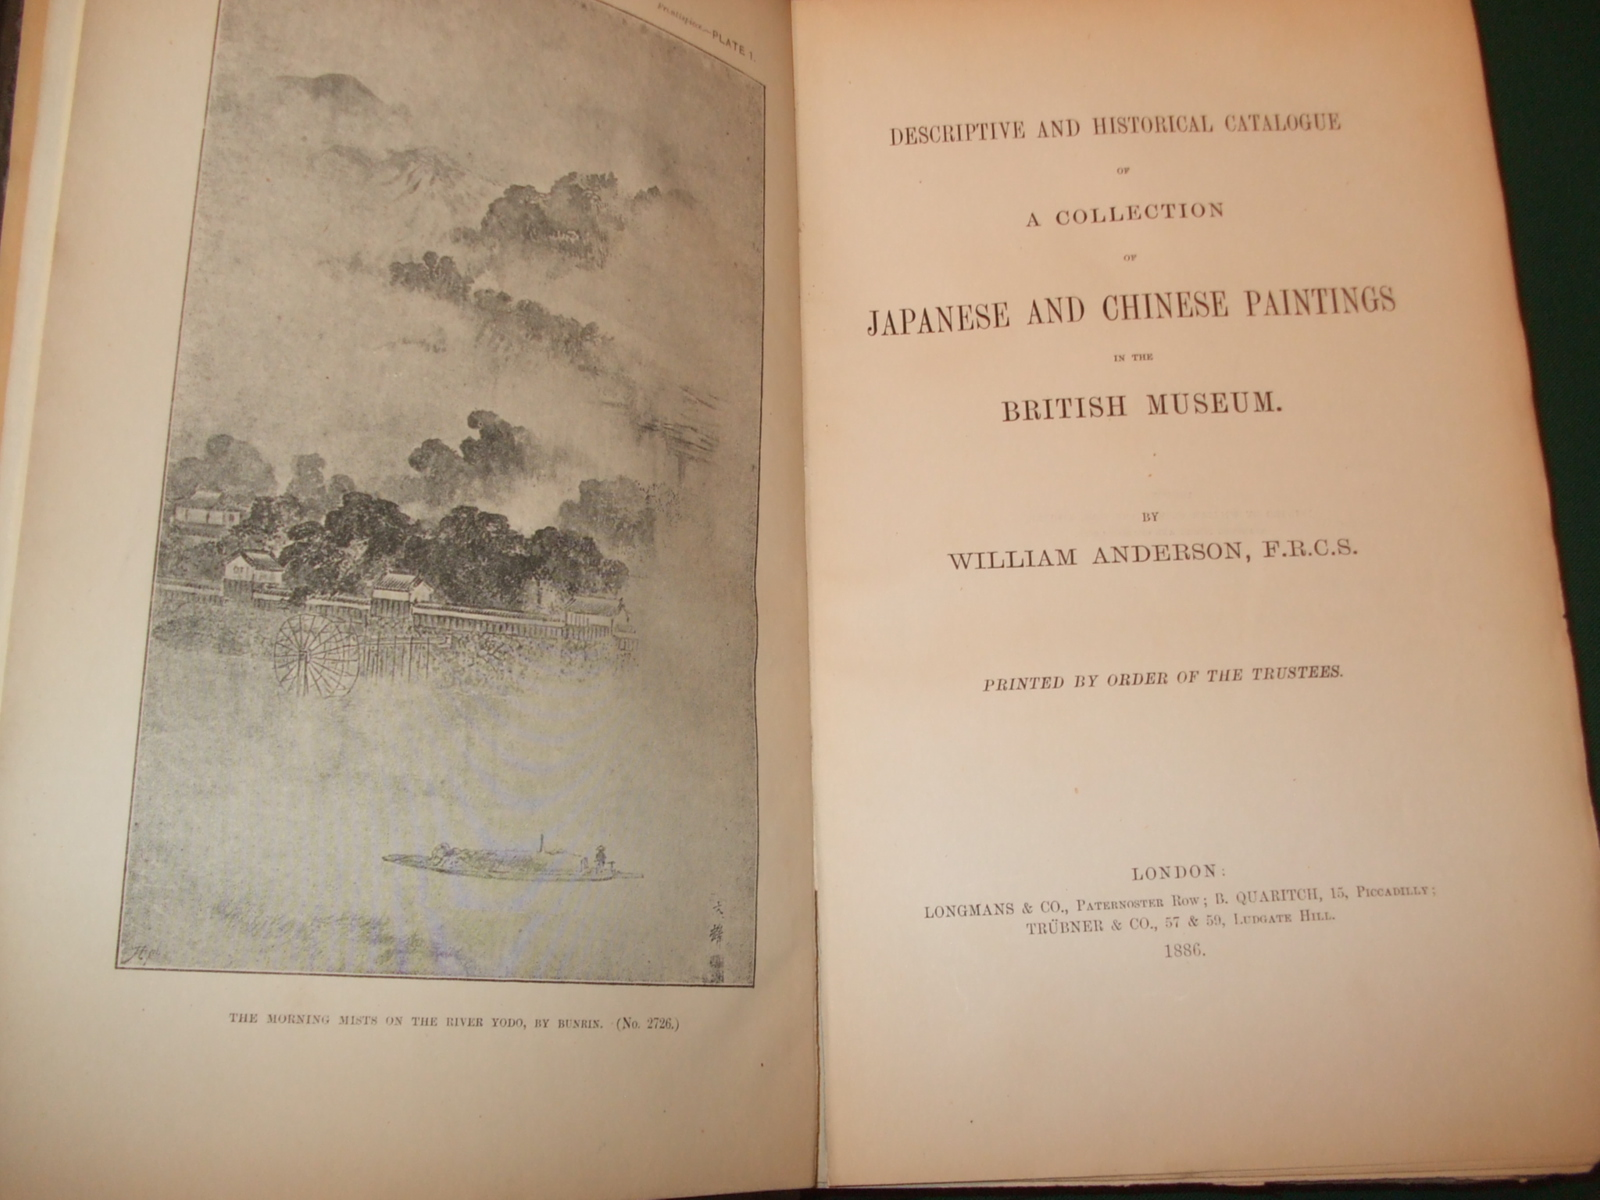 Image for Descriptive And Historical Catalogue Of A Collection Of Japanese And Chinese Paintings In The British Museum. Printed By Order Of The Trustees.